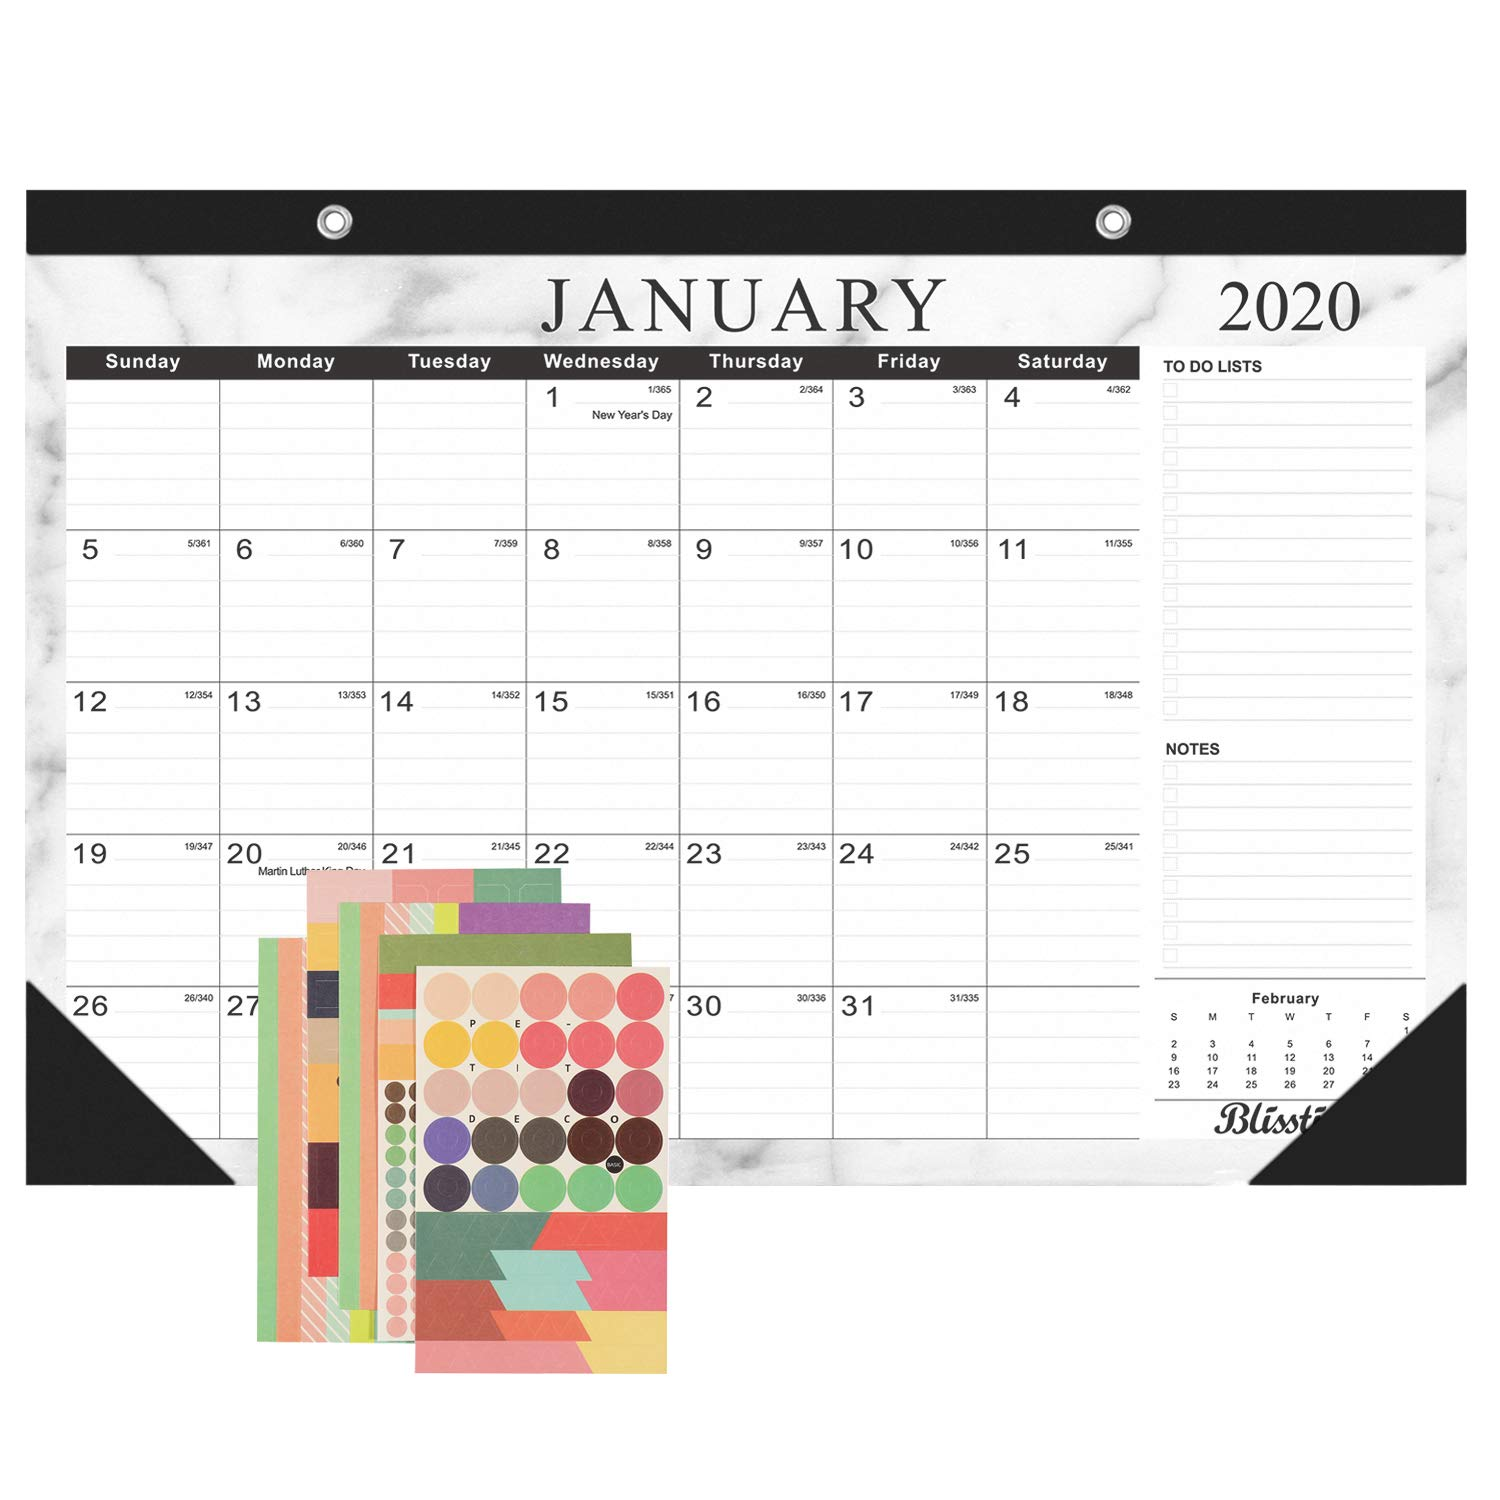 """12 Months Marble Wall Calendar//Desk Pad Blotter//Monthly Pages Planner for Office 17/"""" x 12/"""" Runs from January 2020 Till December 2020 Colovis 2020 Desk Calendar School or Home"""